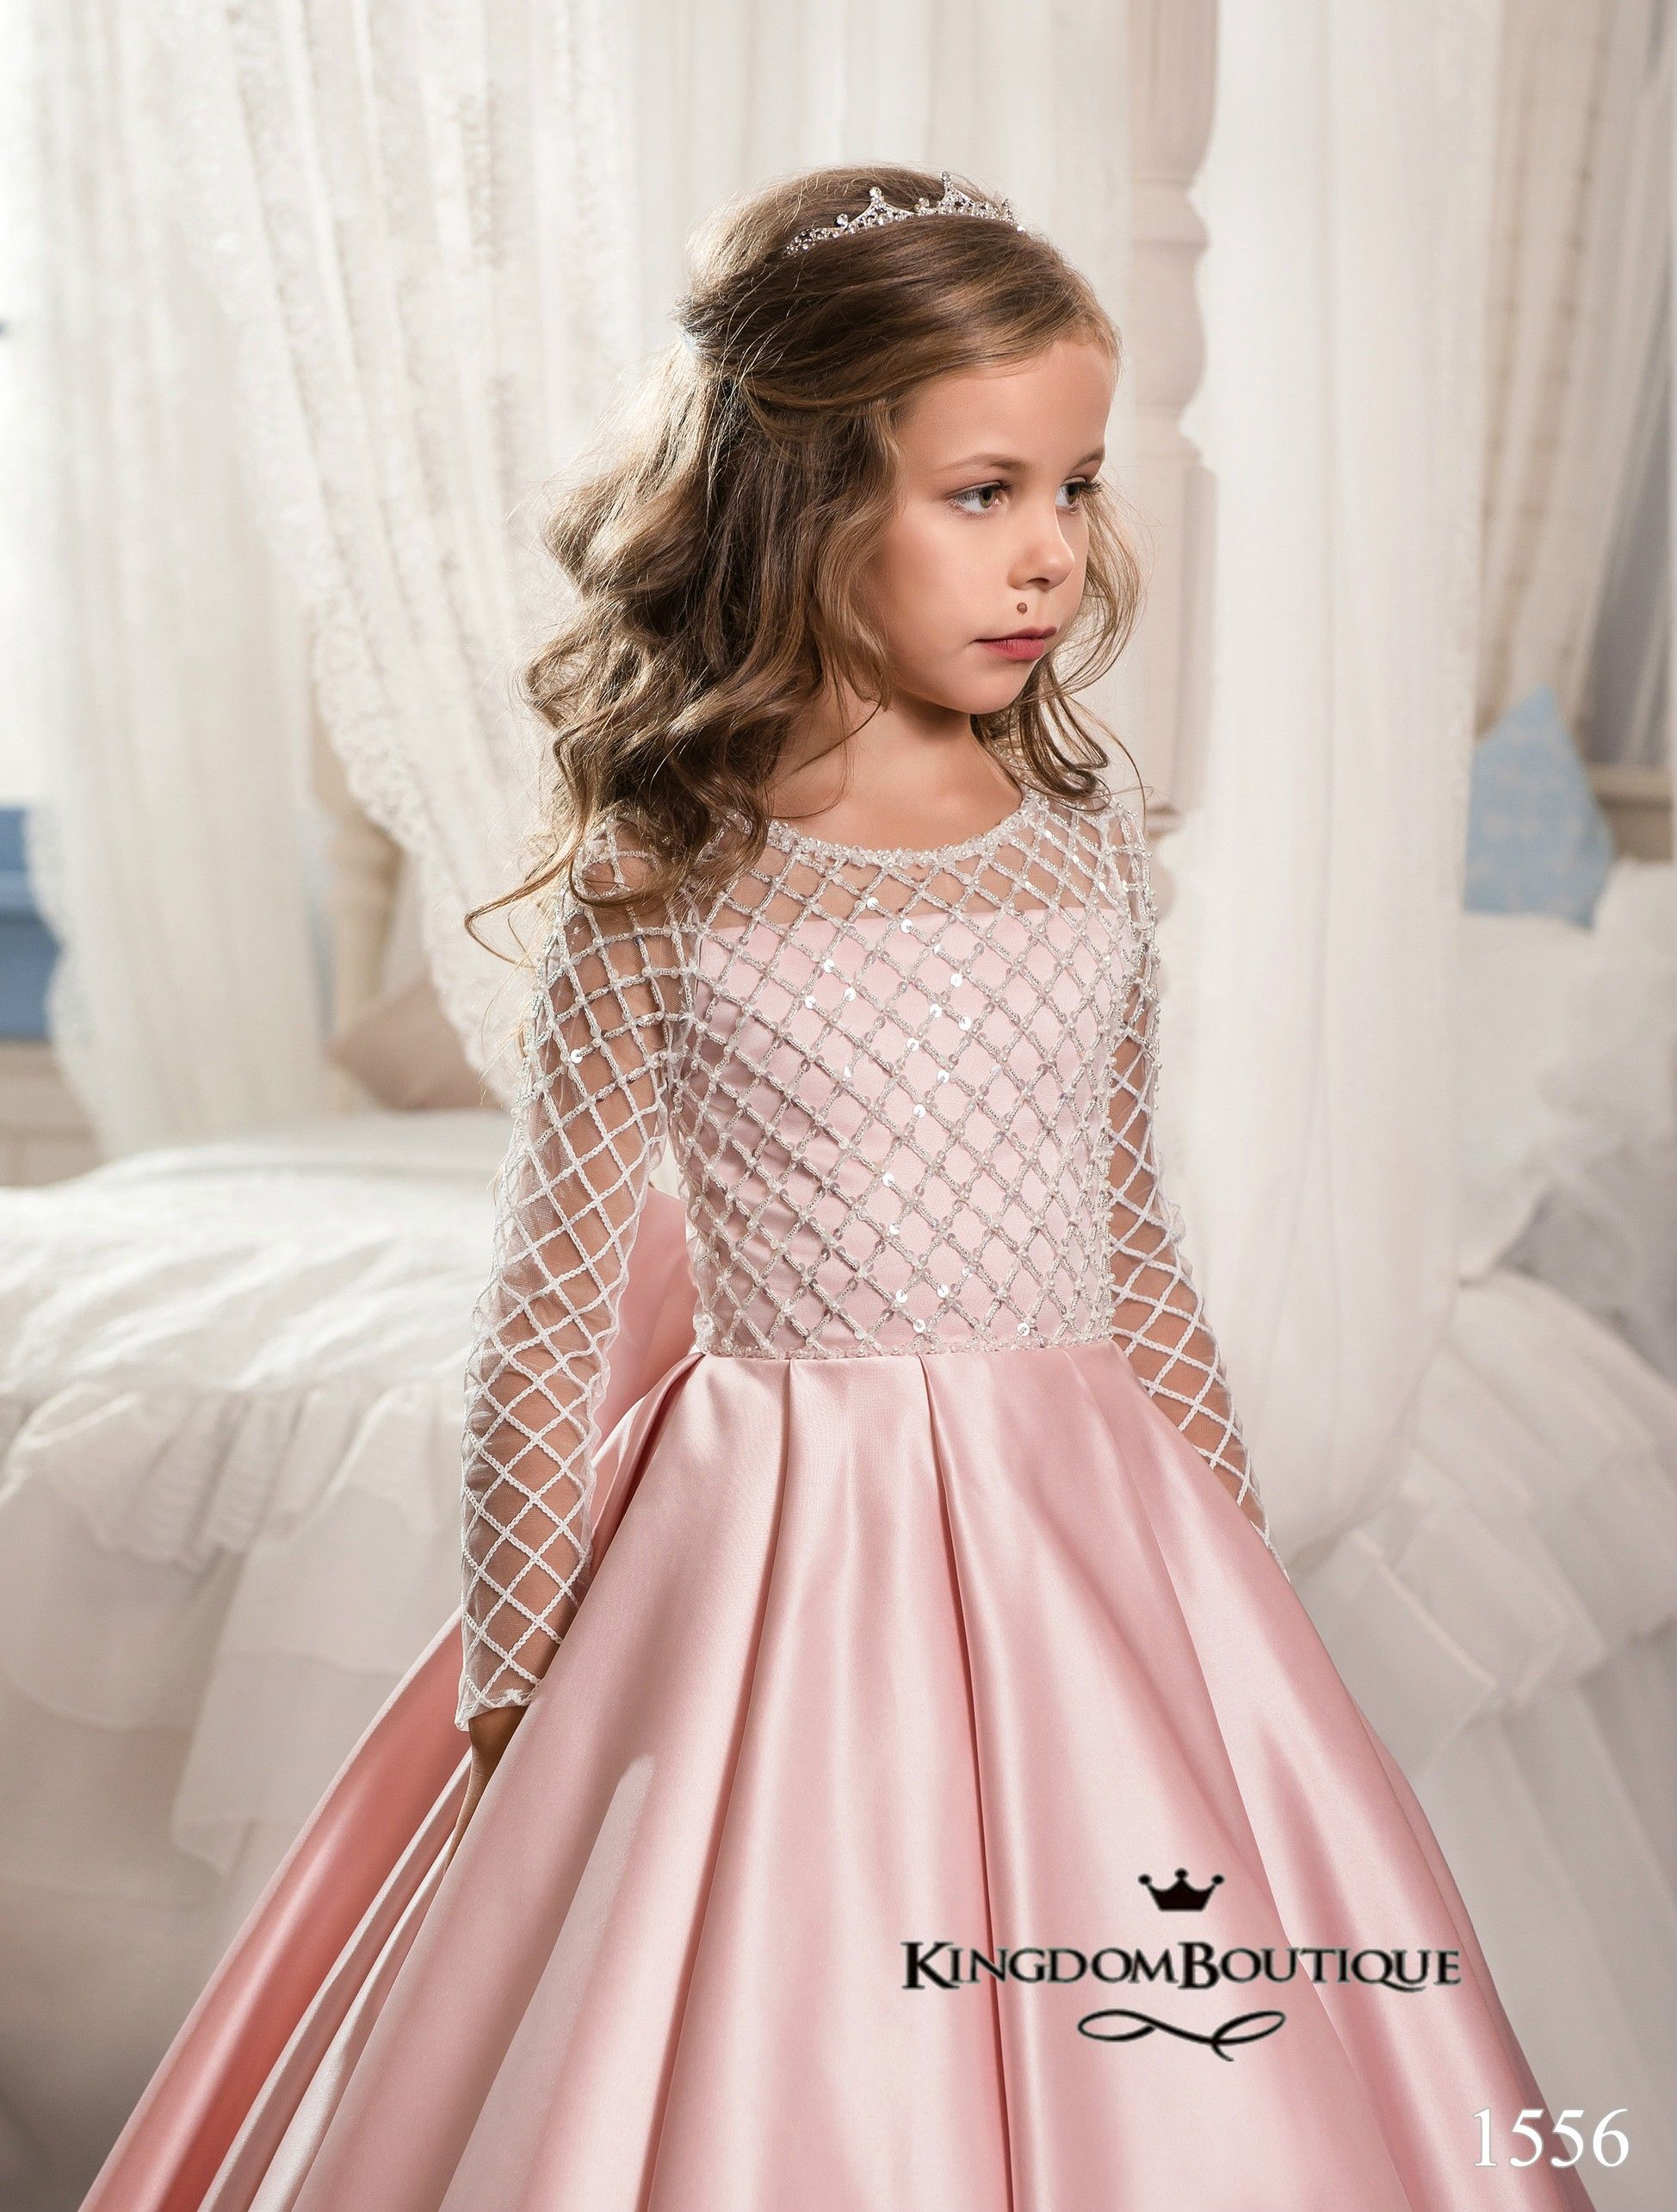 Sleeping Beauty : Dress 16-1556 - kingdom.boutique | Janelle | Pinterest